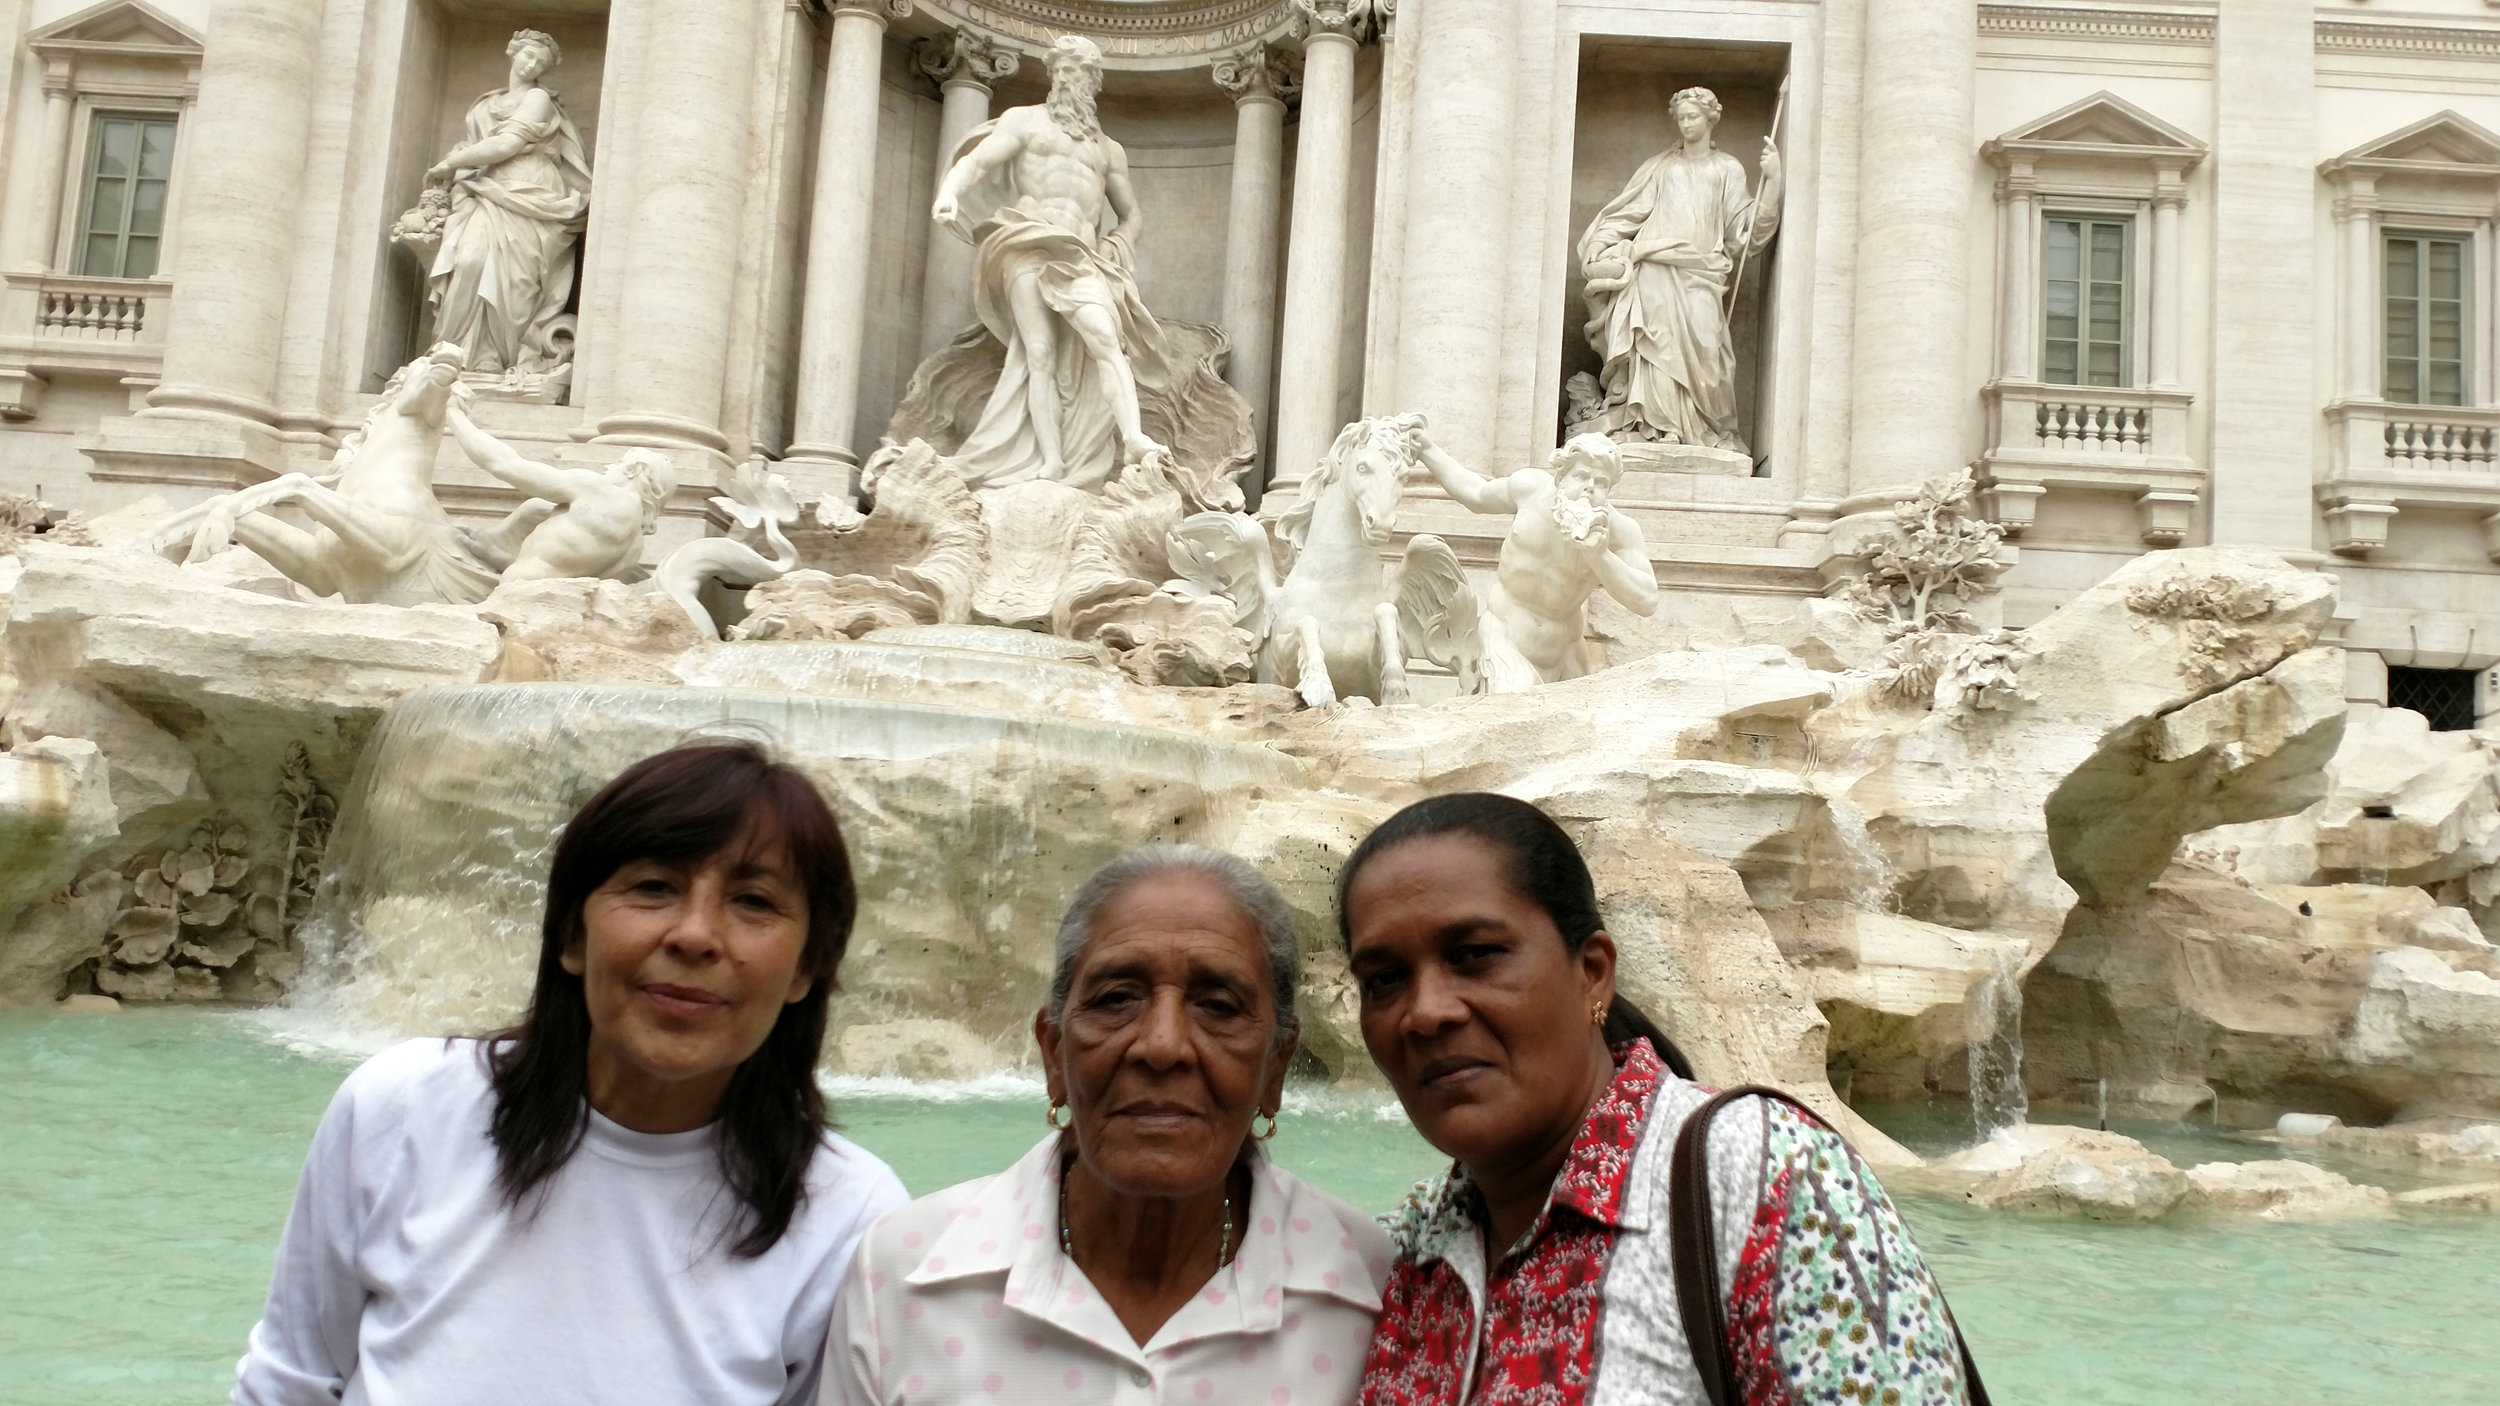 Sonia, Dilia and Maribel at the Fontana di Trevi